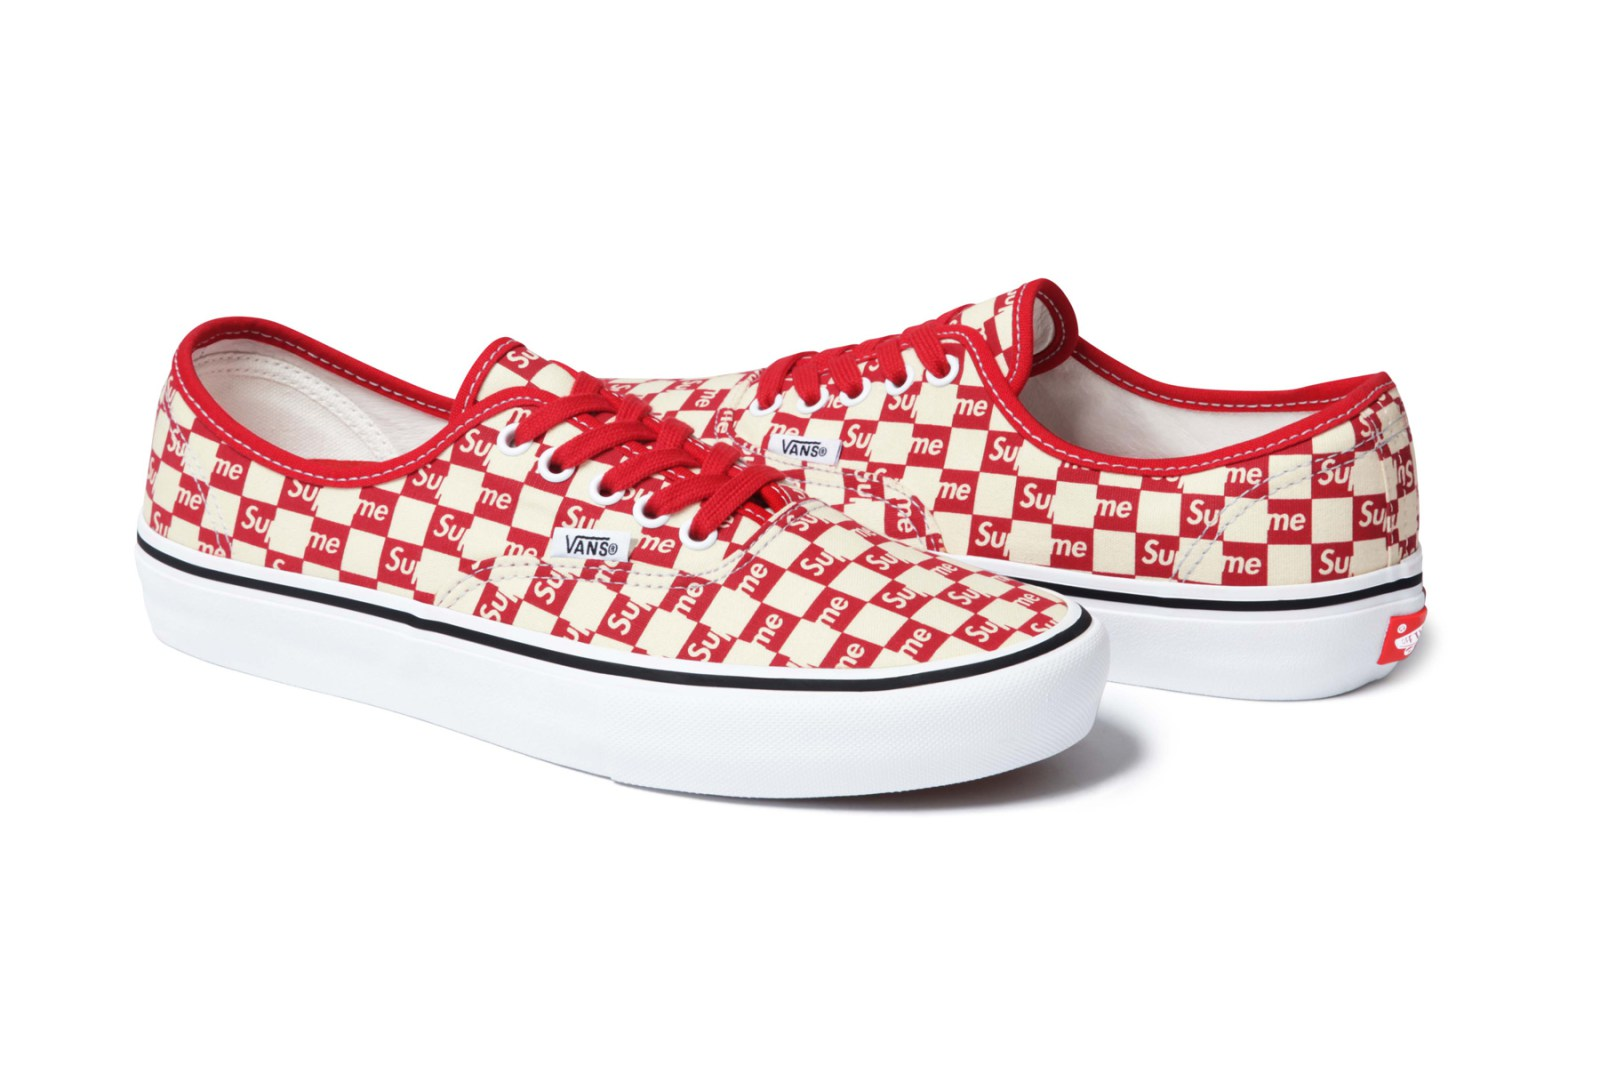 a85e9536d3db Supreme x Vans is Back and it s Better